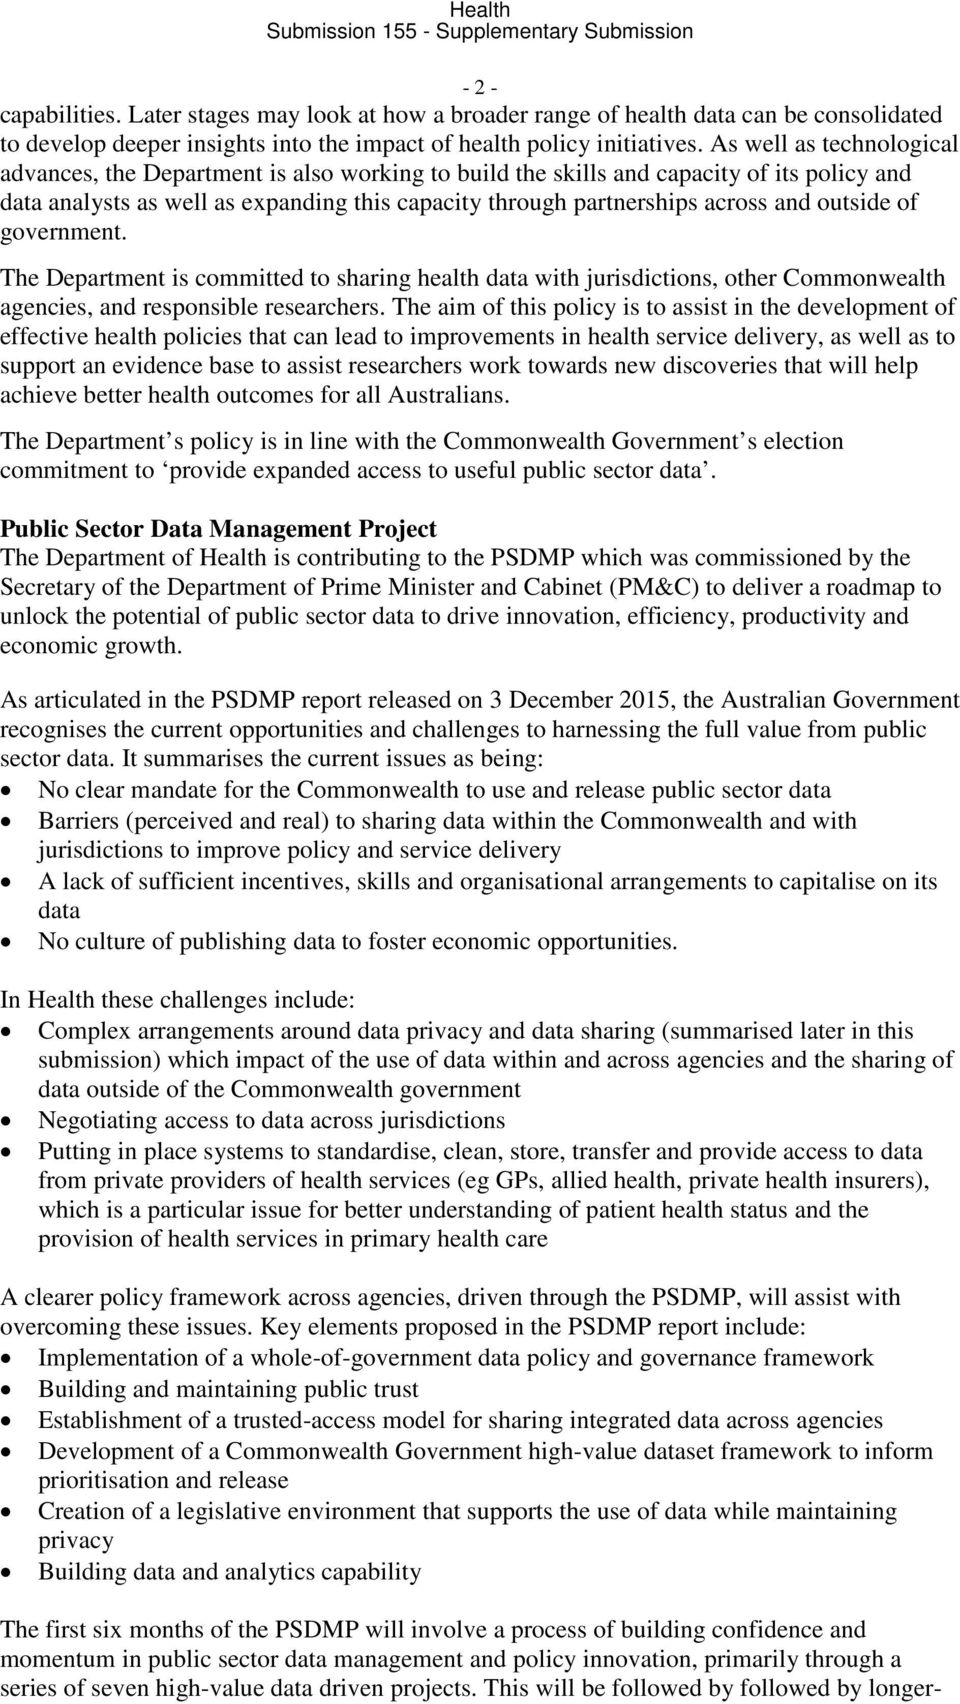 outside of government. The Department is committed to sharing health data with jurisdictions, other Commonwealth agencies, and responsible researchers.